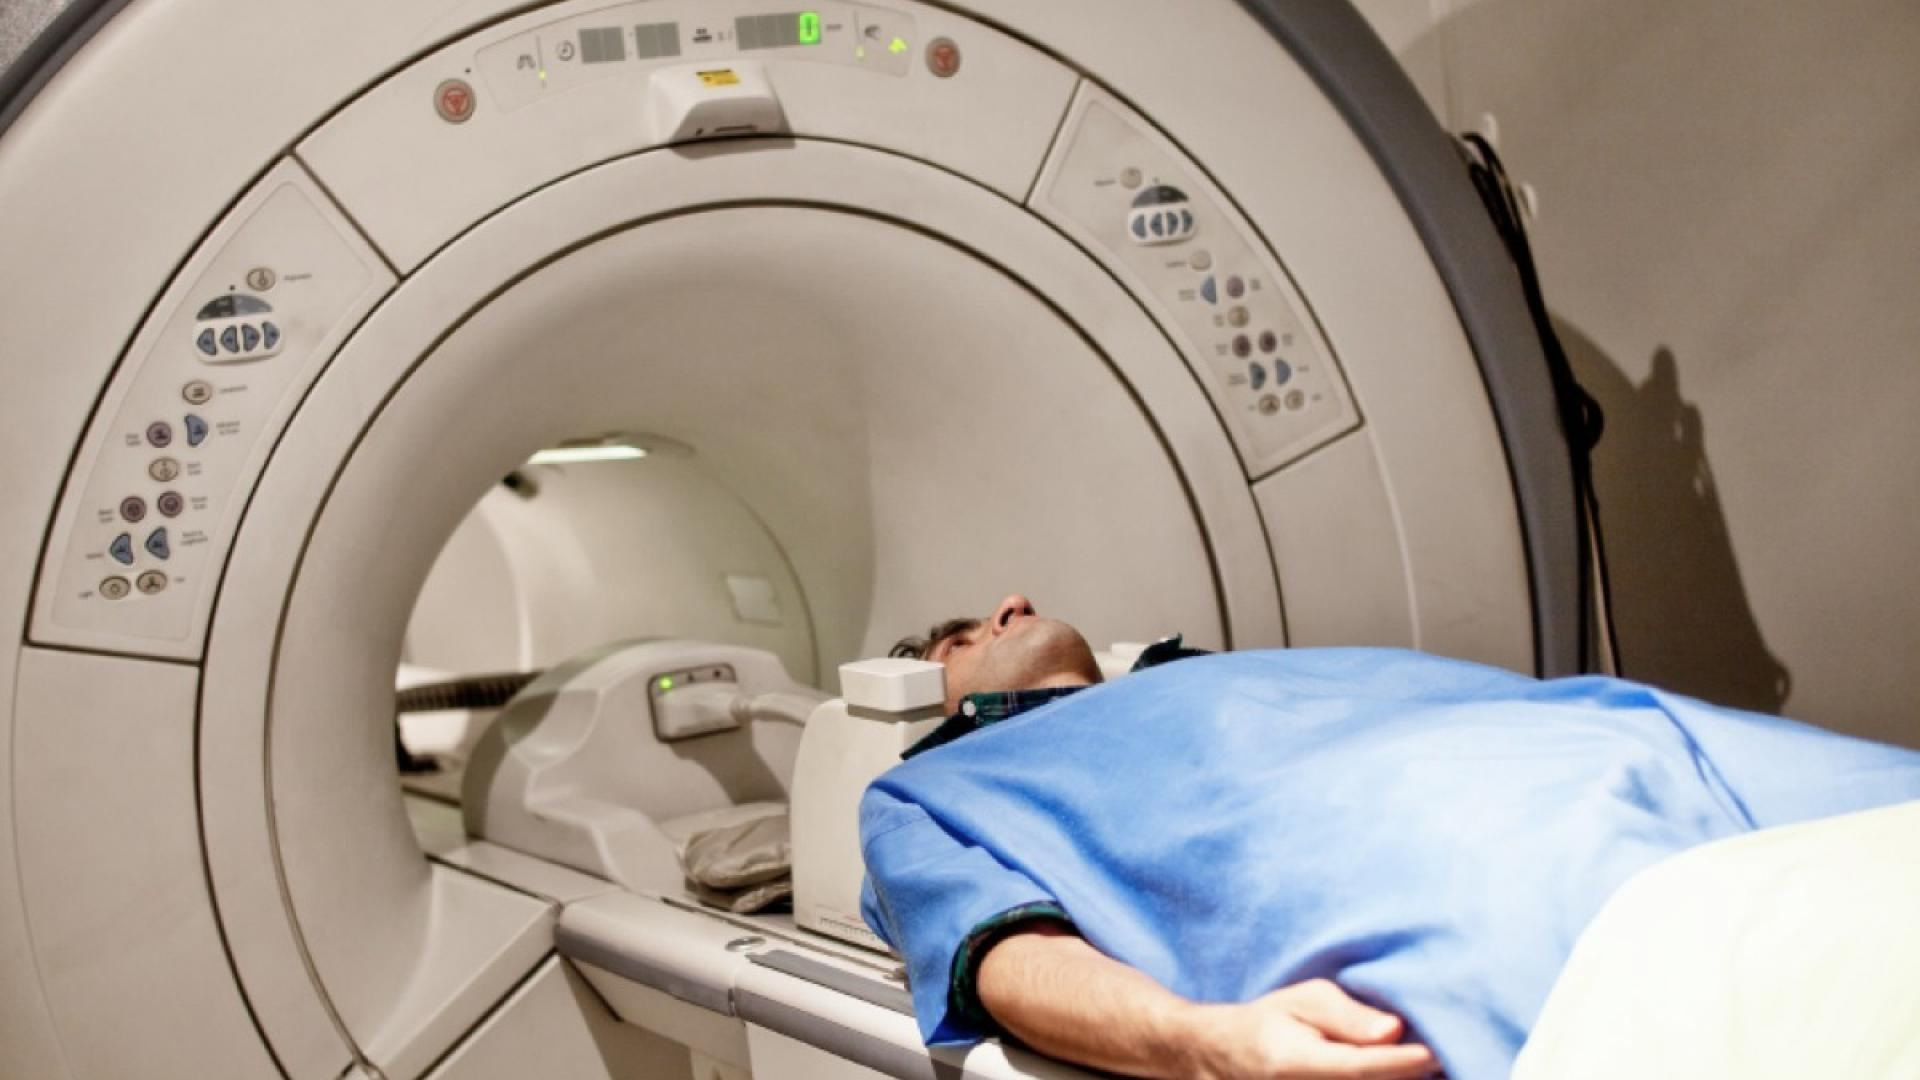 MRI scans best at finding heart disease